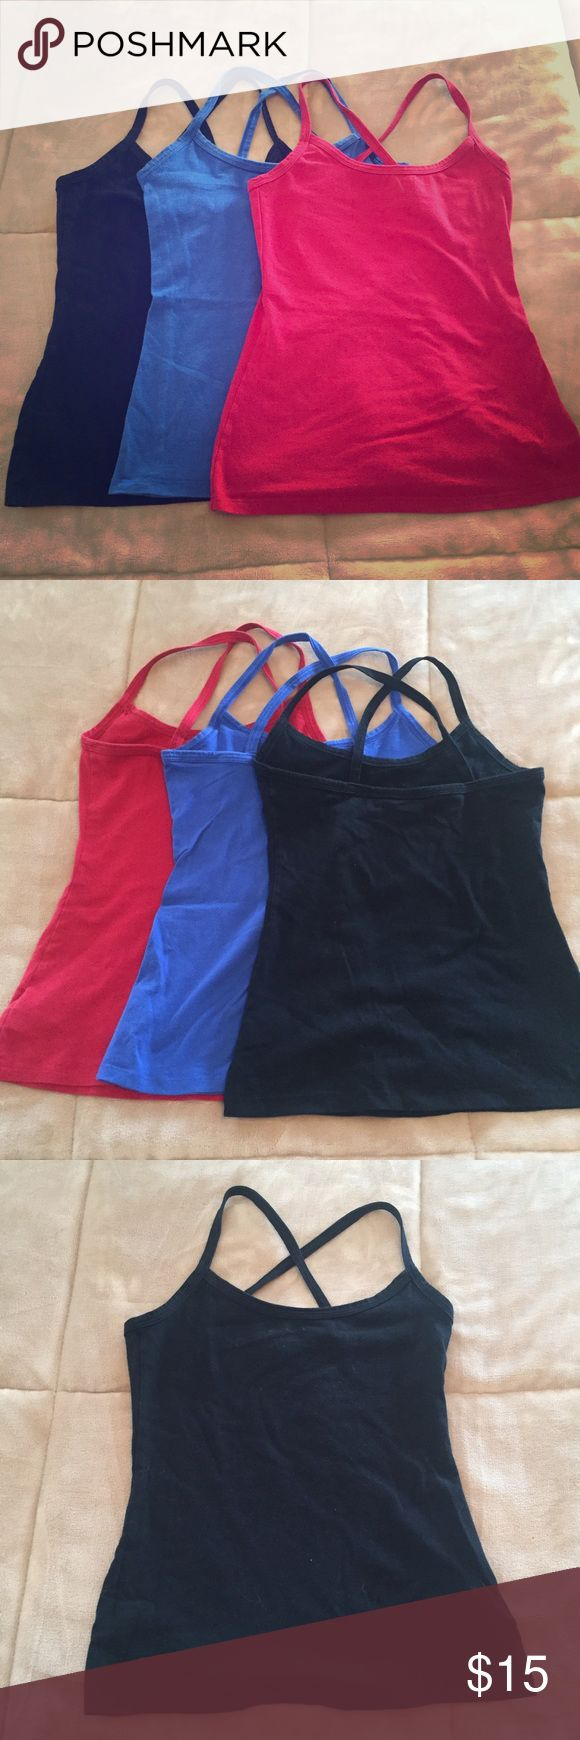 Set of 3 Old Navy cami tank tops Selling Set of 3 Old Navy cami tank tops. Washed and worn but good condition. Old Navy Tops Camisoles